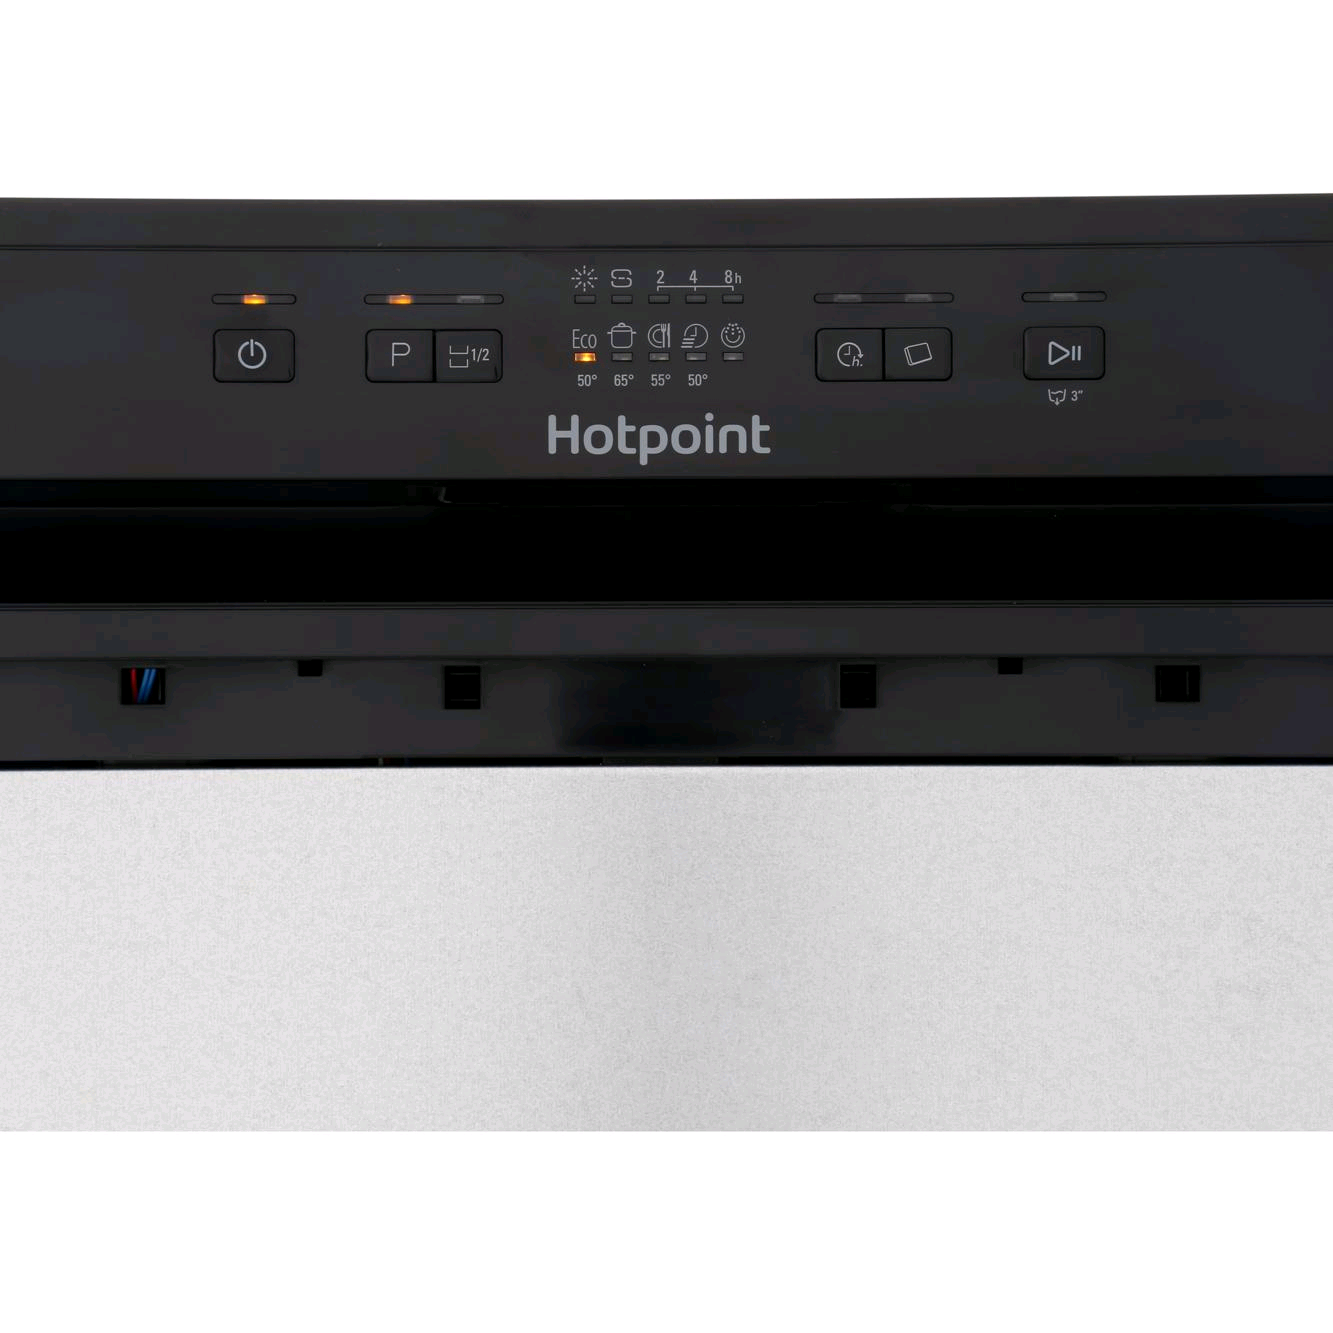 Hotpoint HBC2B19 Semi Integrated Built In Dishwasher 13 Place Setting